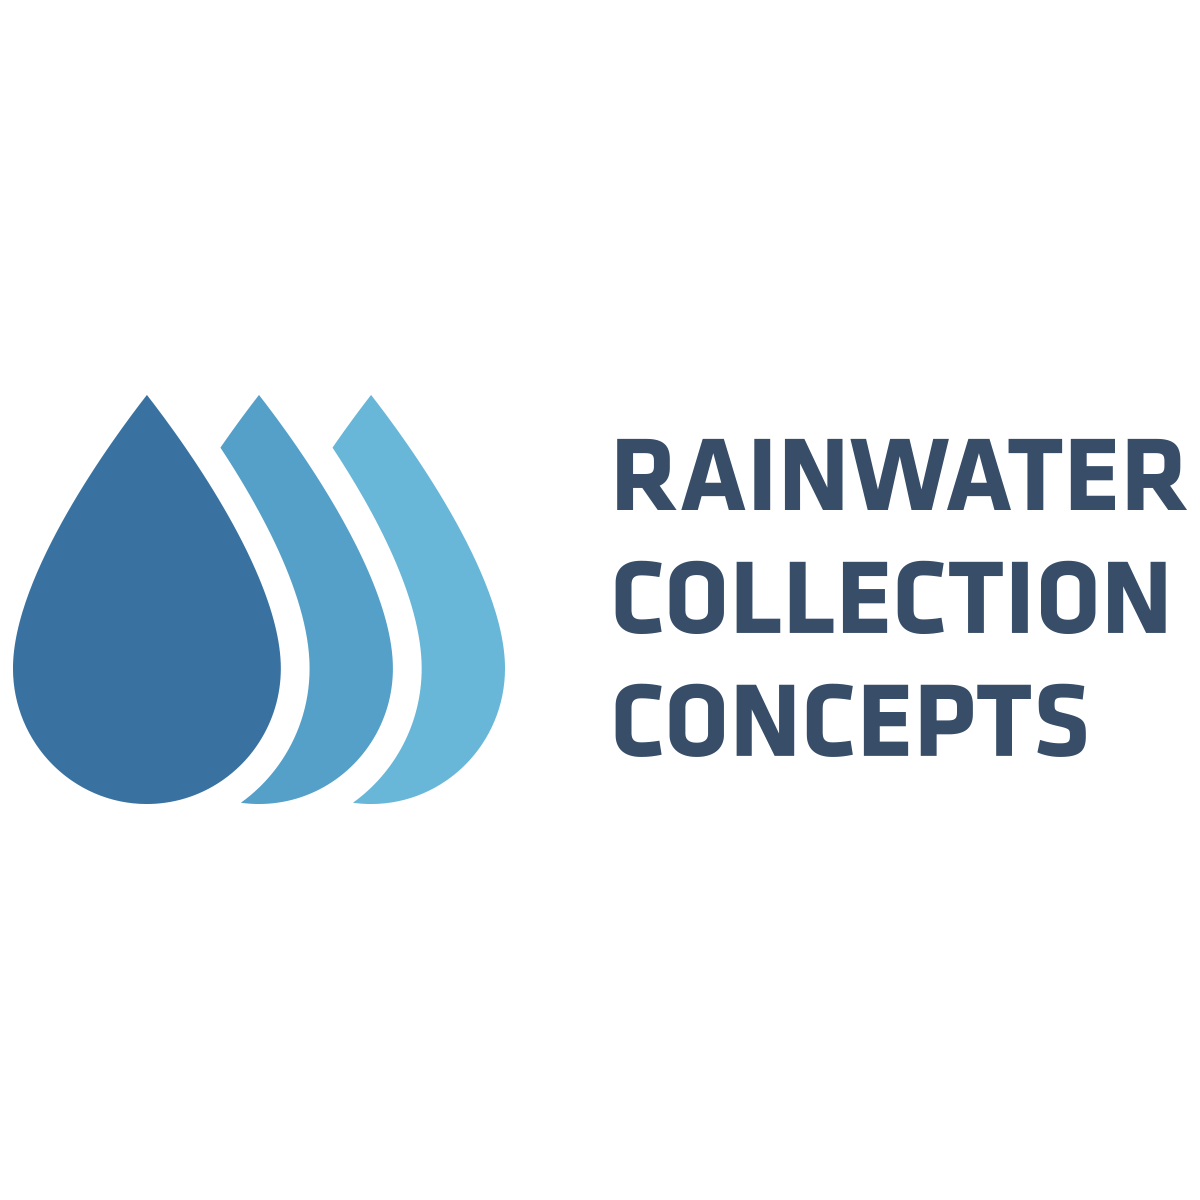 Rainwater Collection Concepts